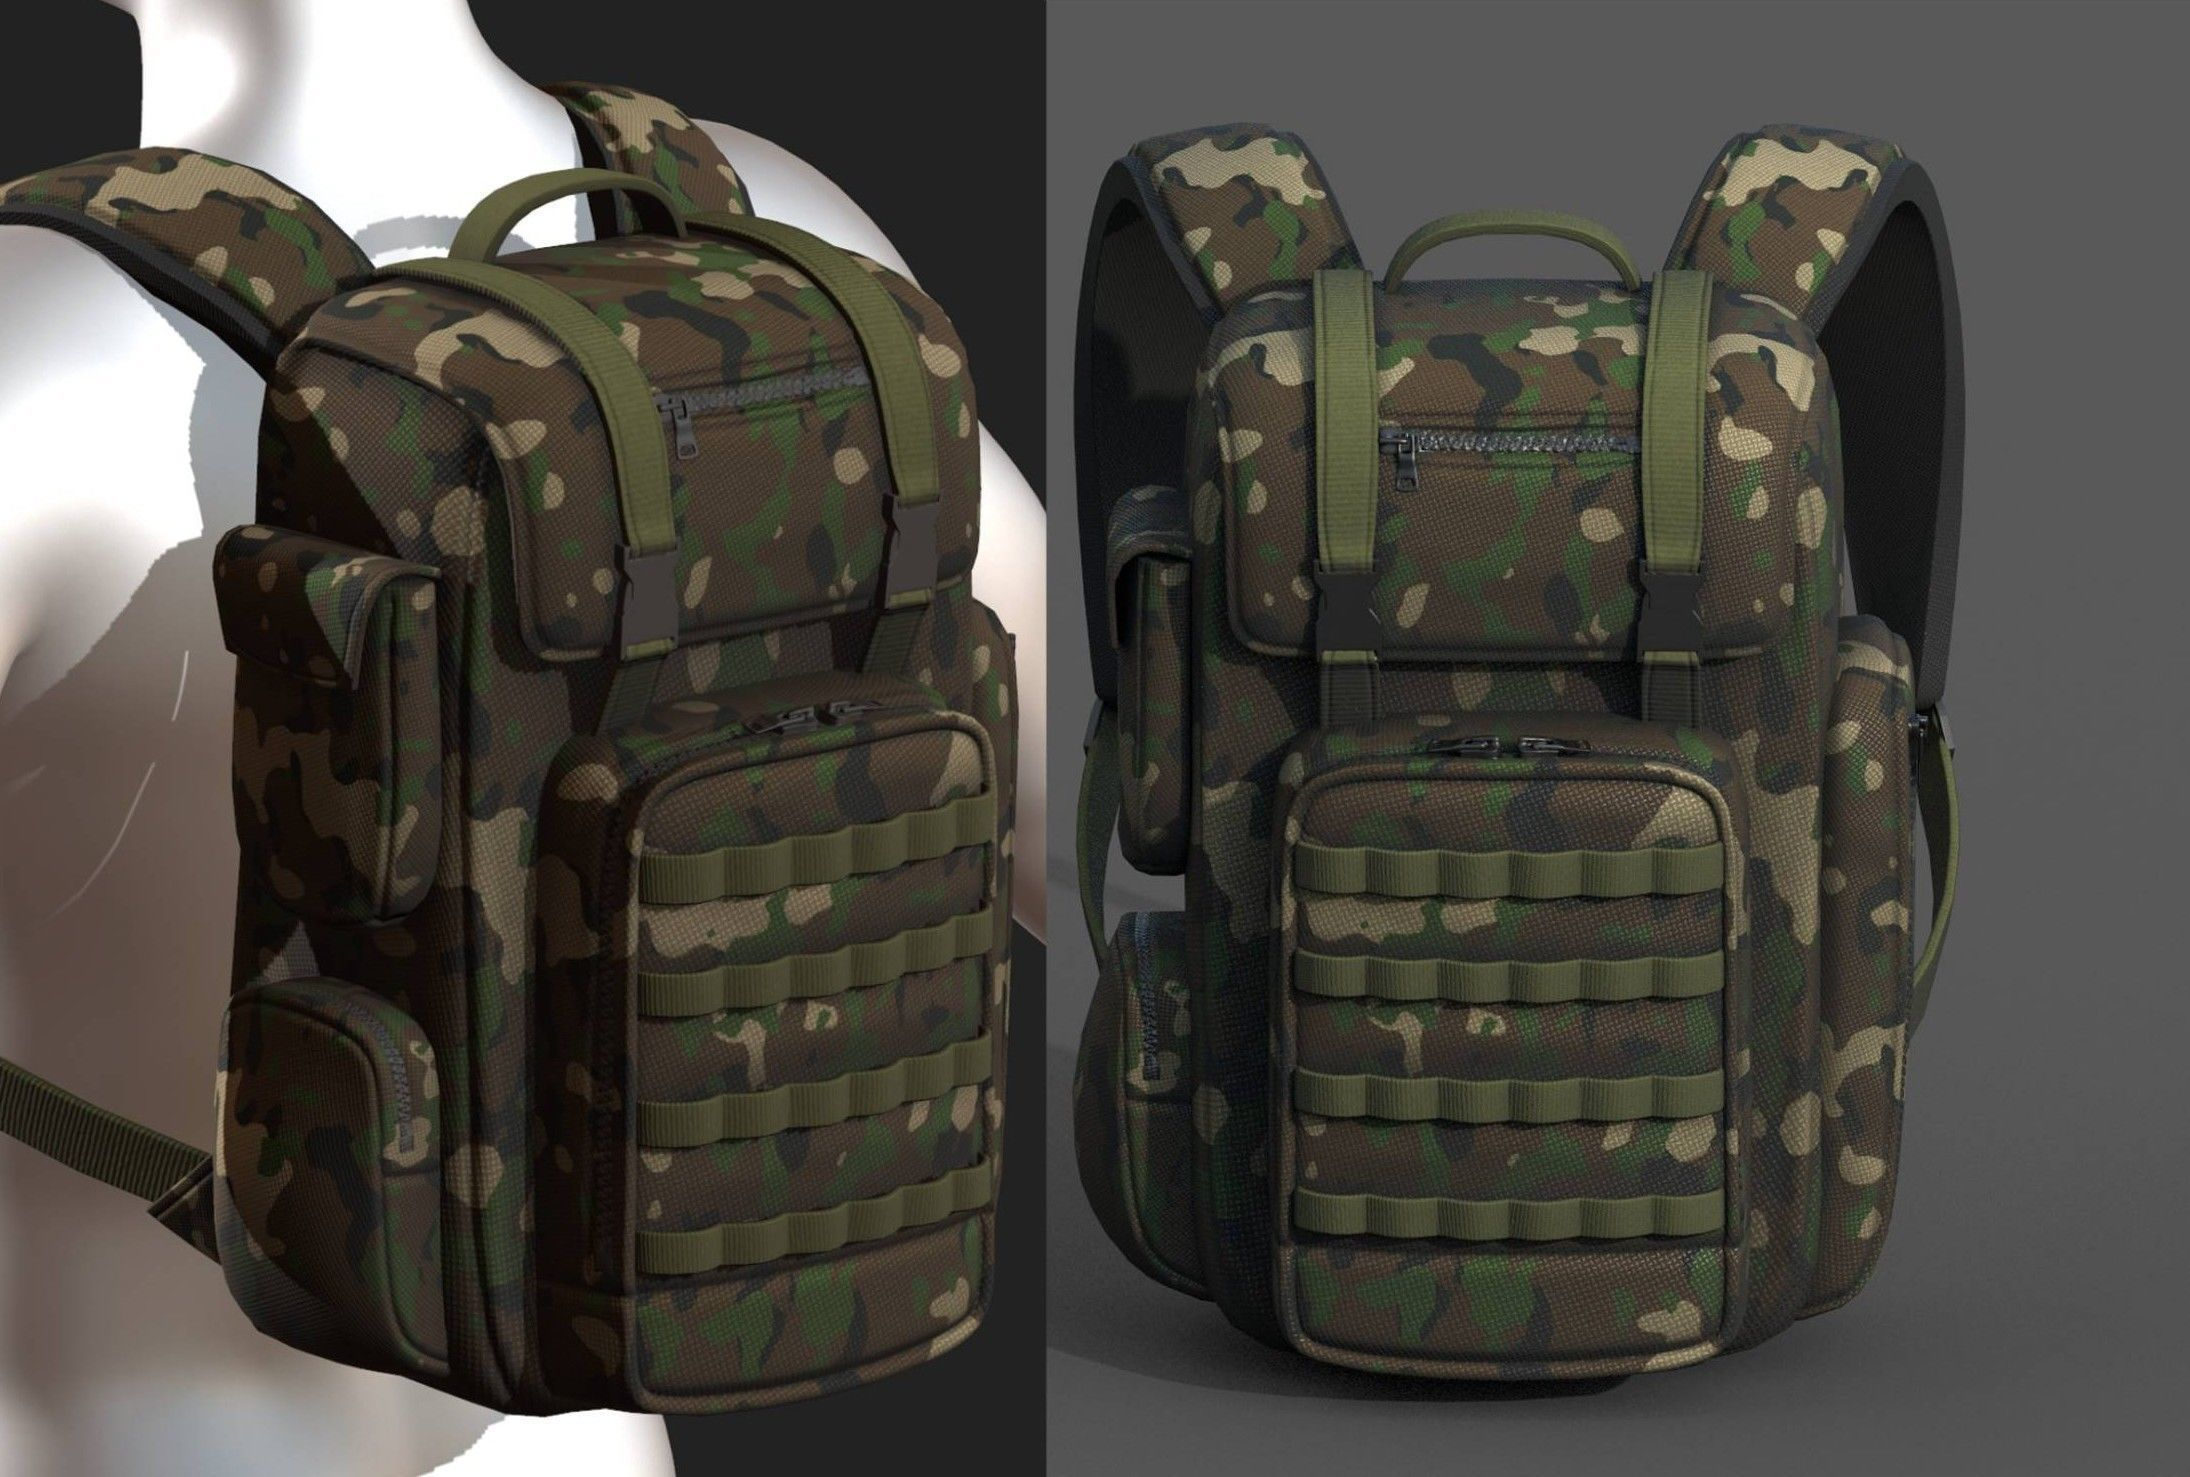 Backpack military combat soldier bag baggage